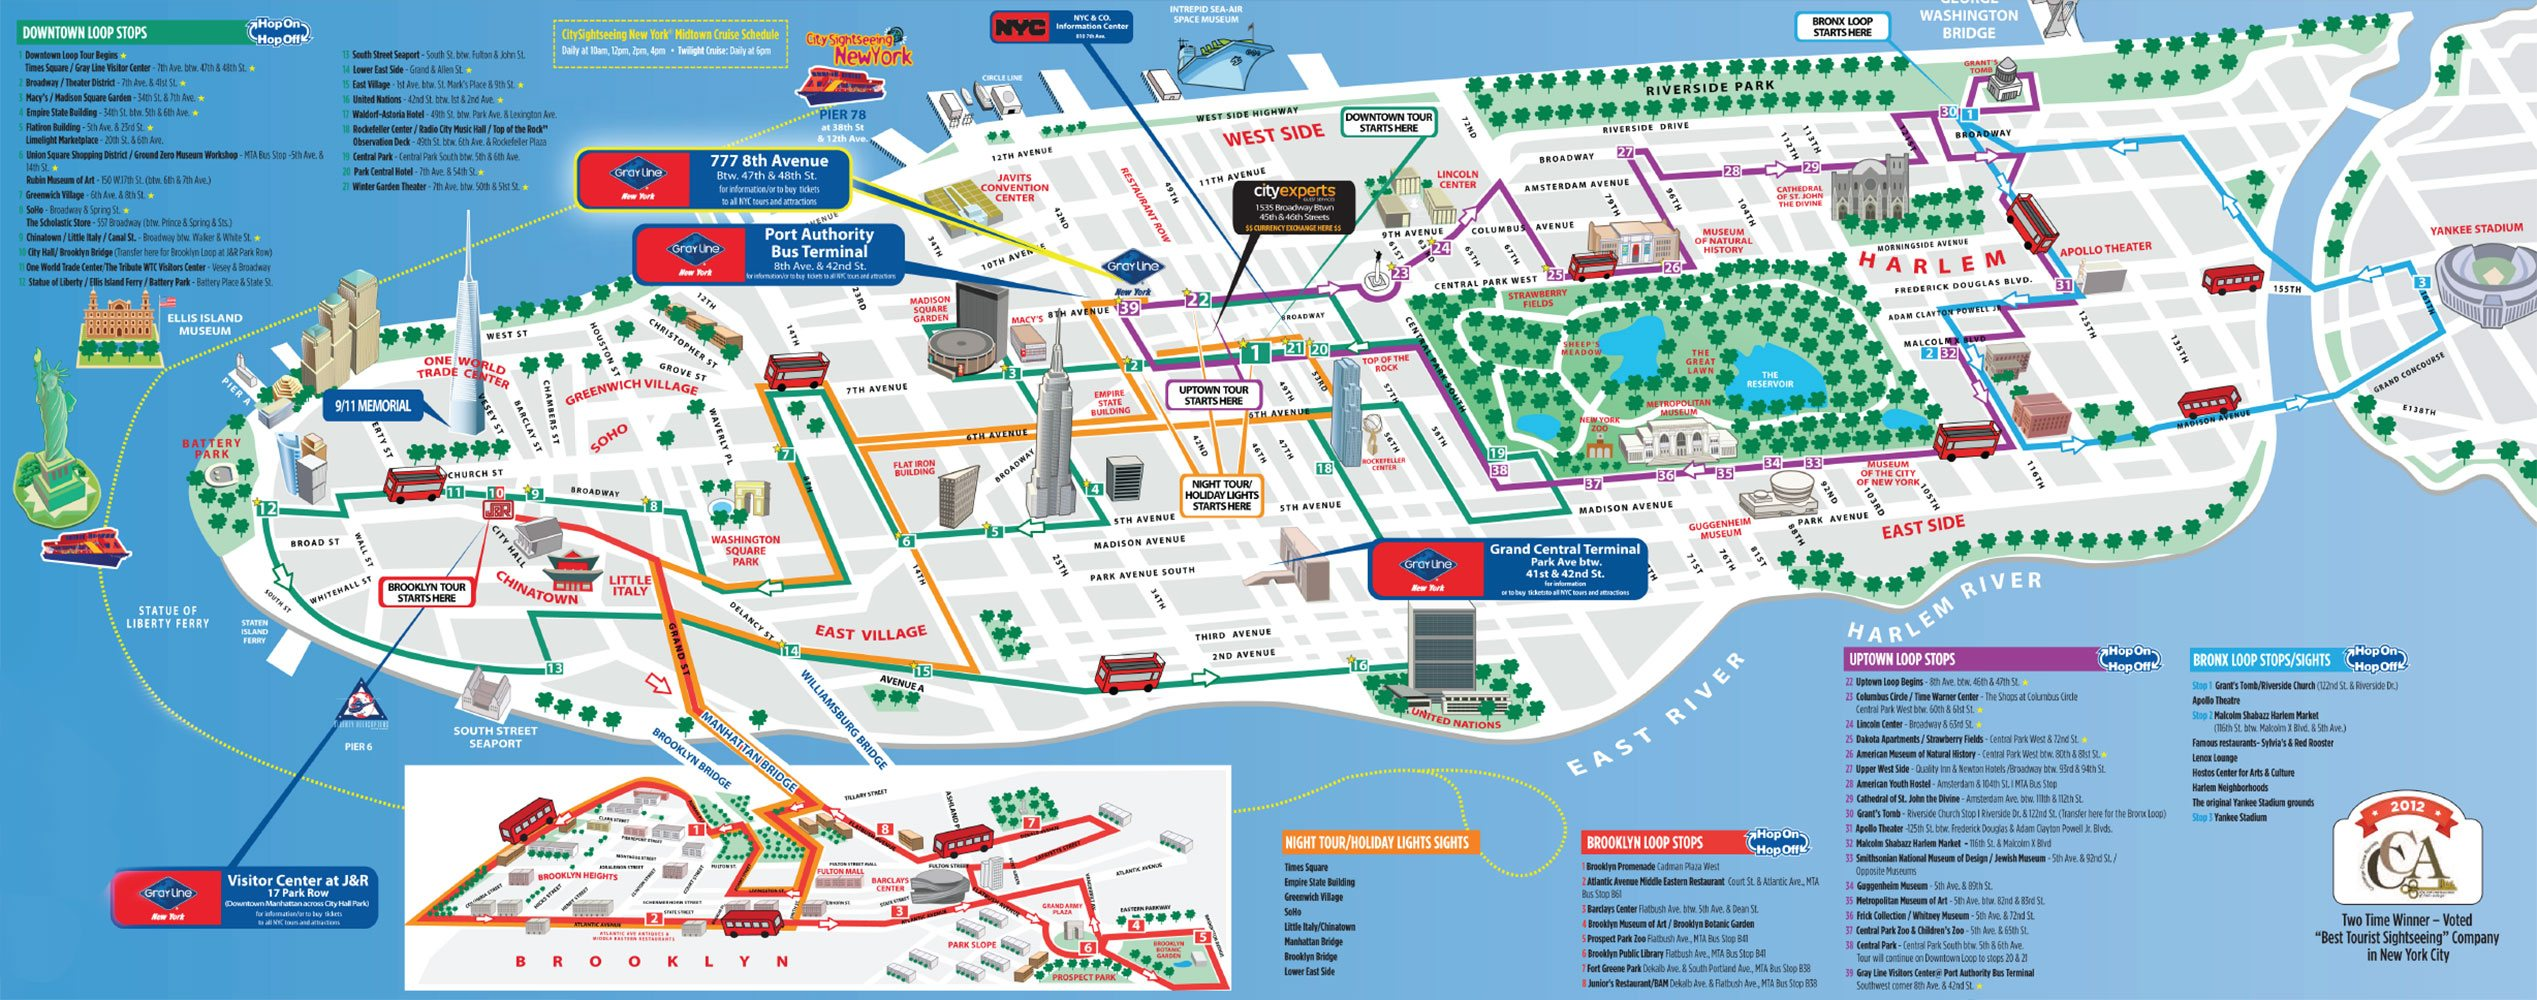 Map Of Attractions In New York City – New York City Tourist Attractions Map